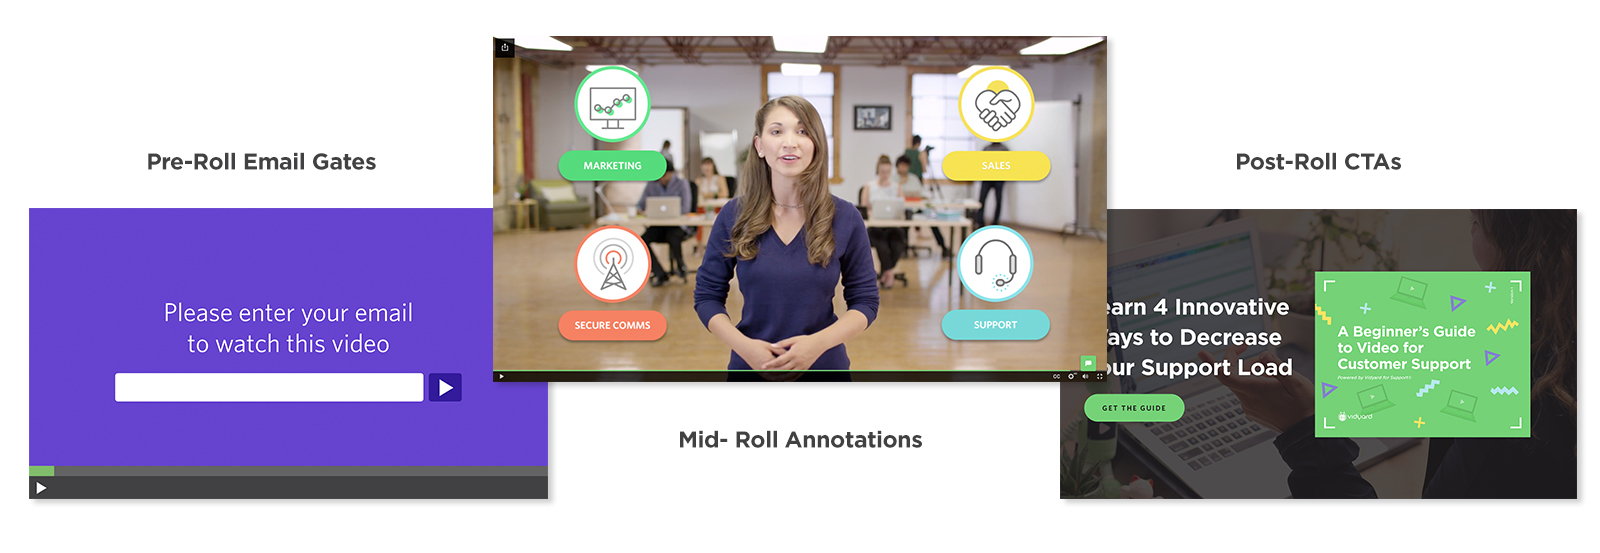 Interactive video elements can include pre-roll email gates, mid-roll annotations, or post-roll CTAs